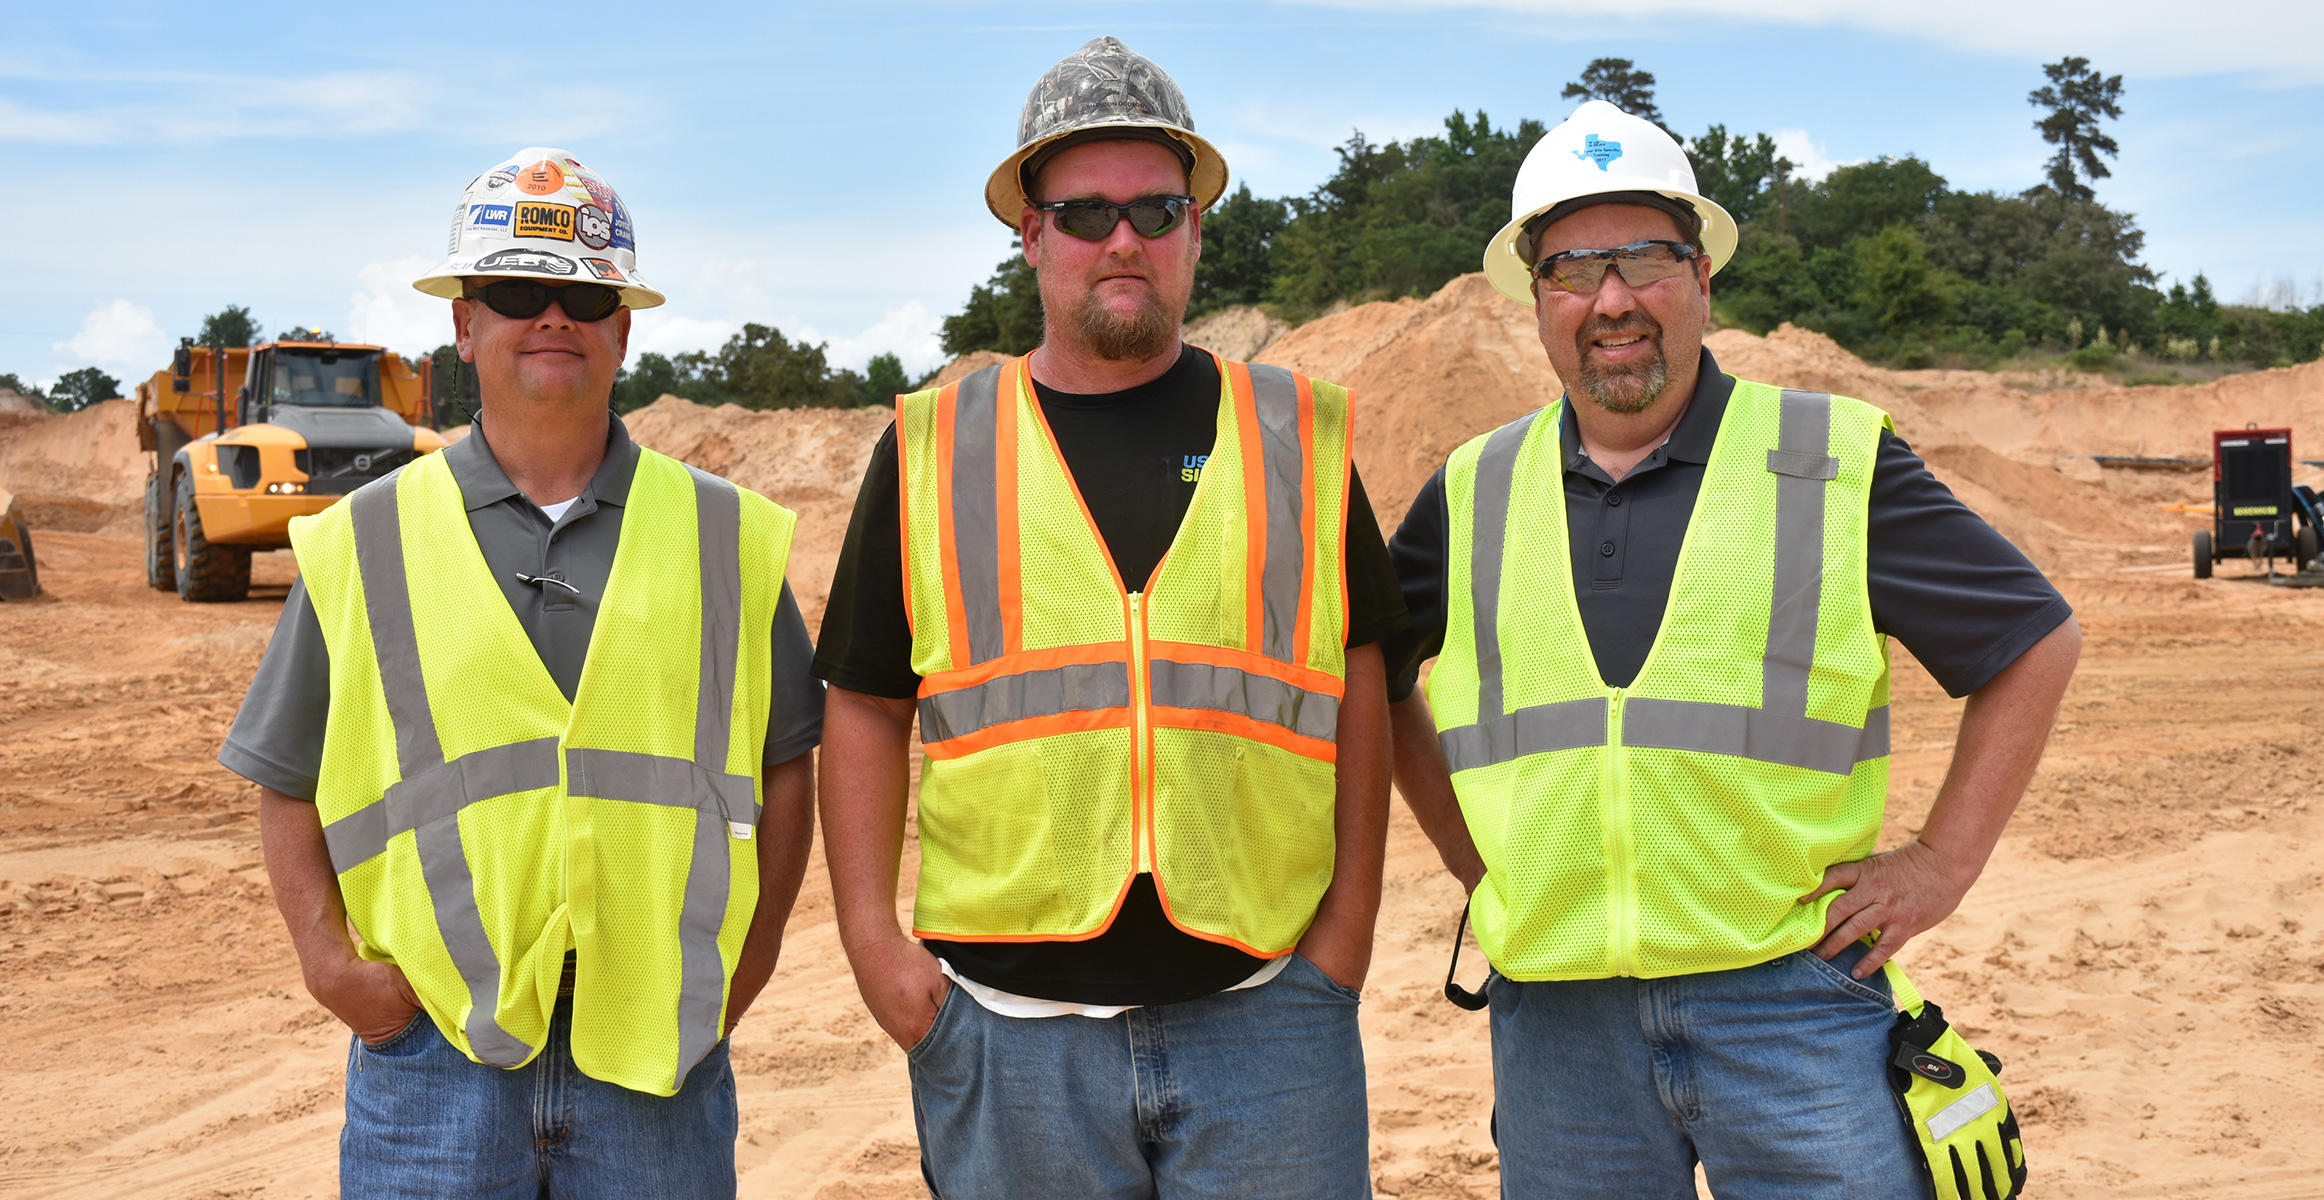 U.S. Silica and ROMCO Equipment work together at quarry near Fort Worth,Texas